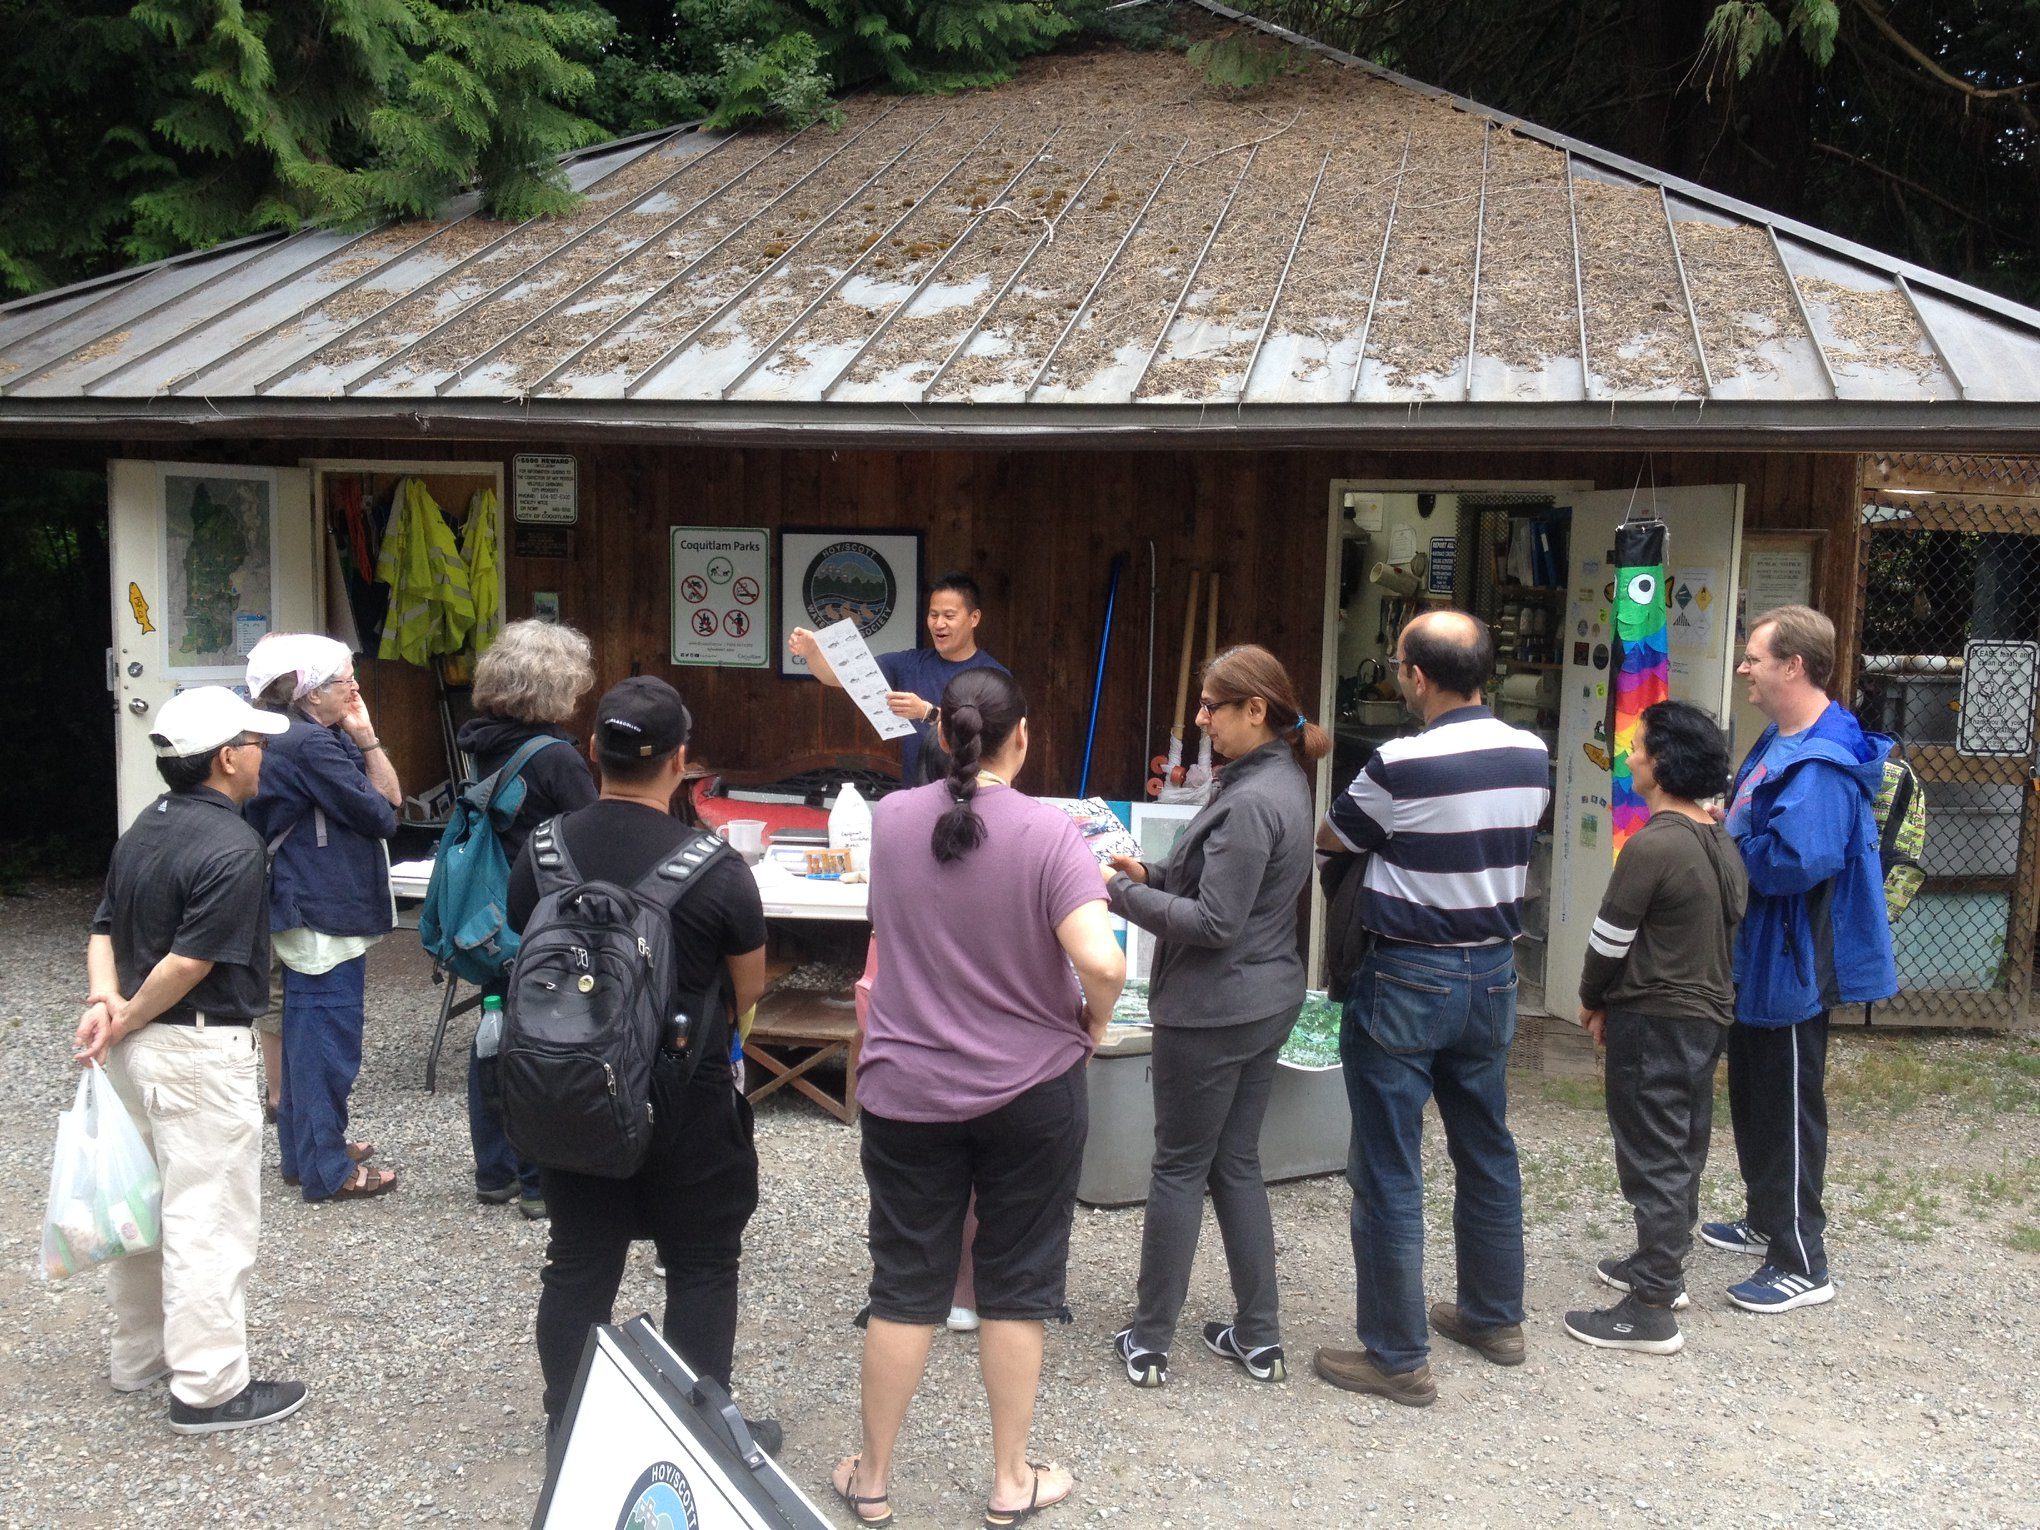 Tour at Hoy Creek Hatchery on Hoy Trail, Coquitlam.